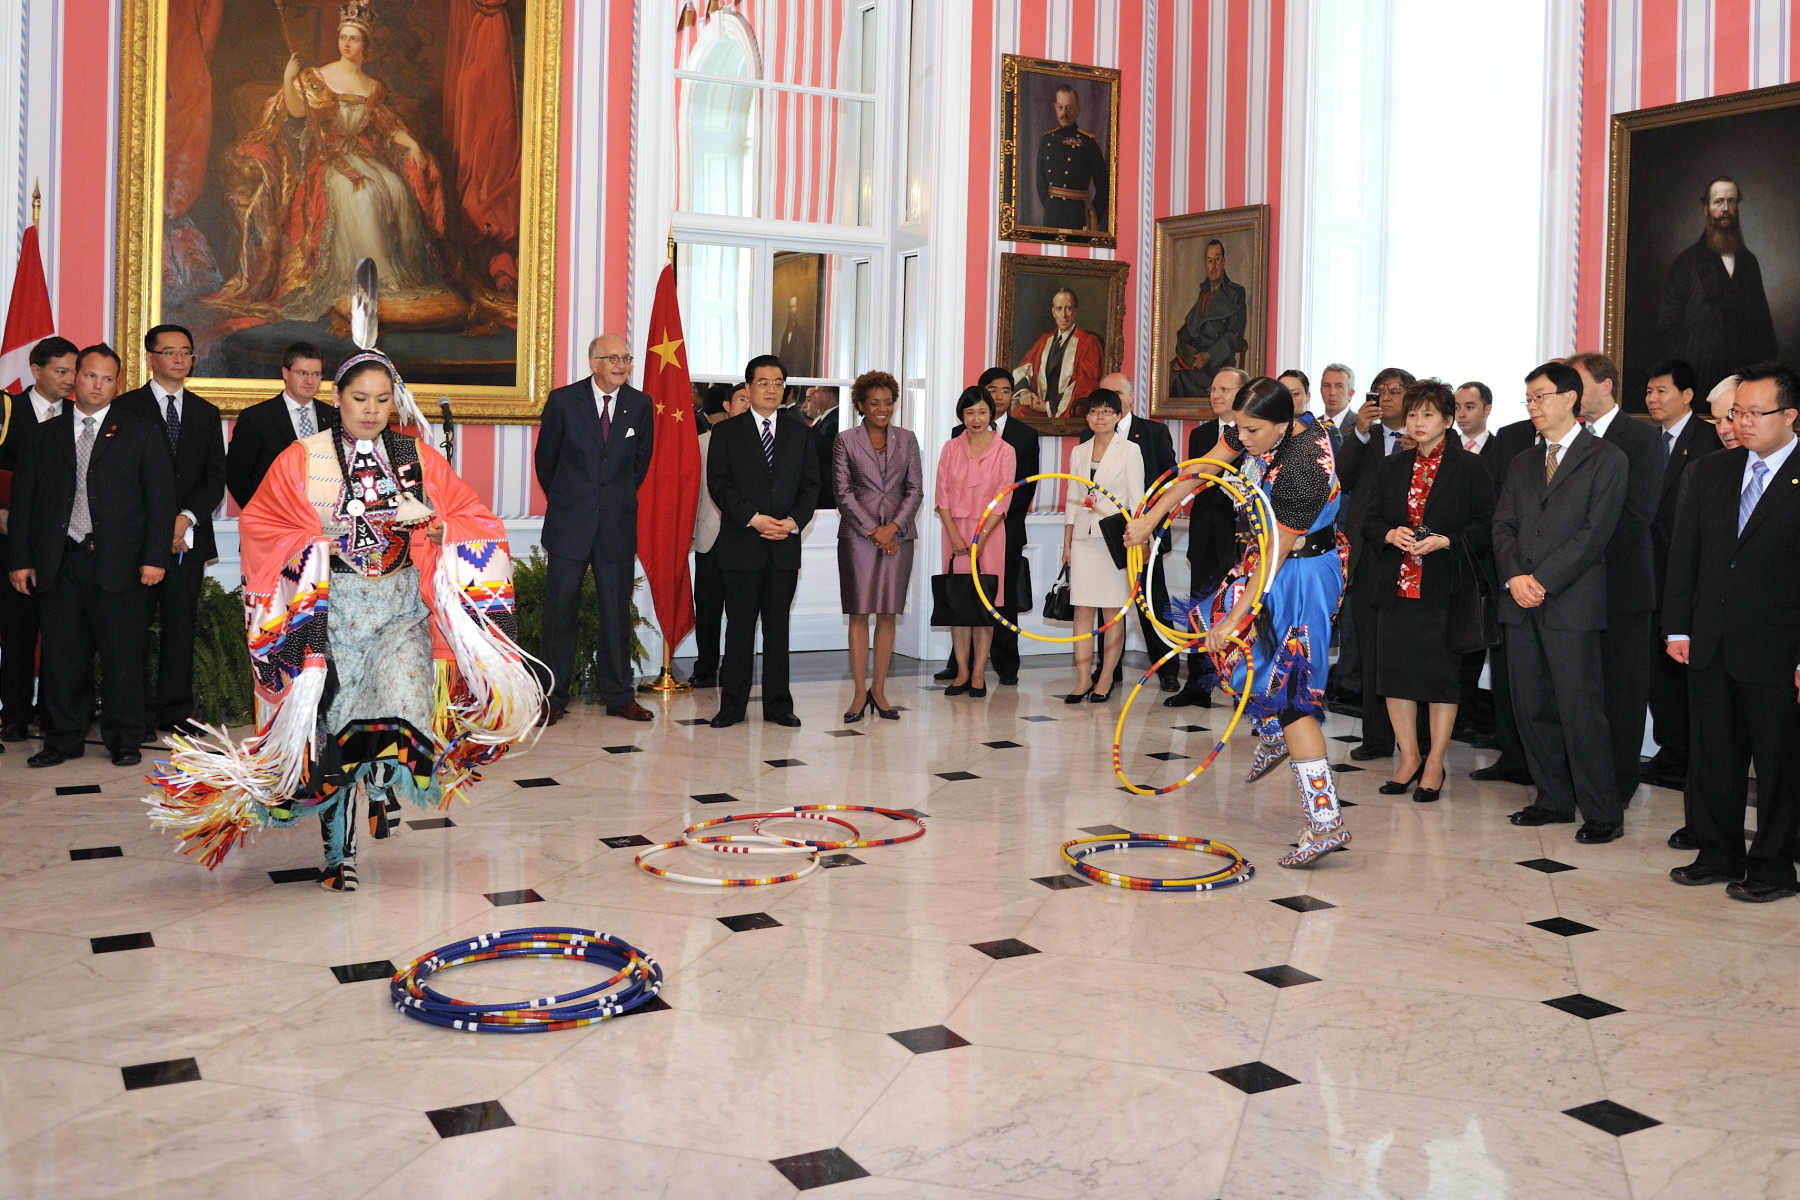 Guests attended a reception with traditional hoop dancers.